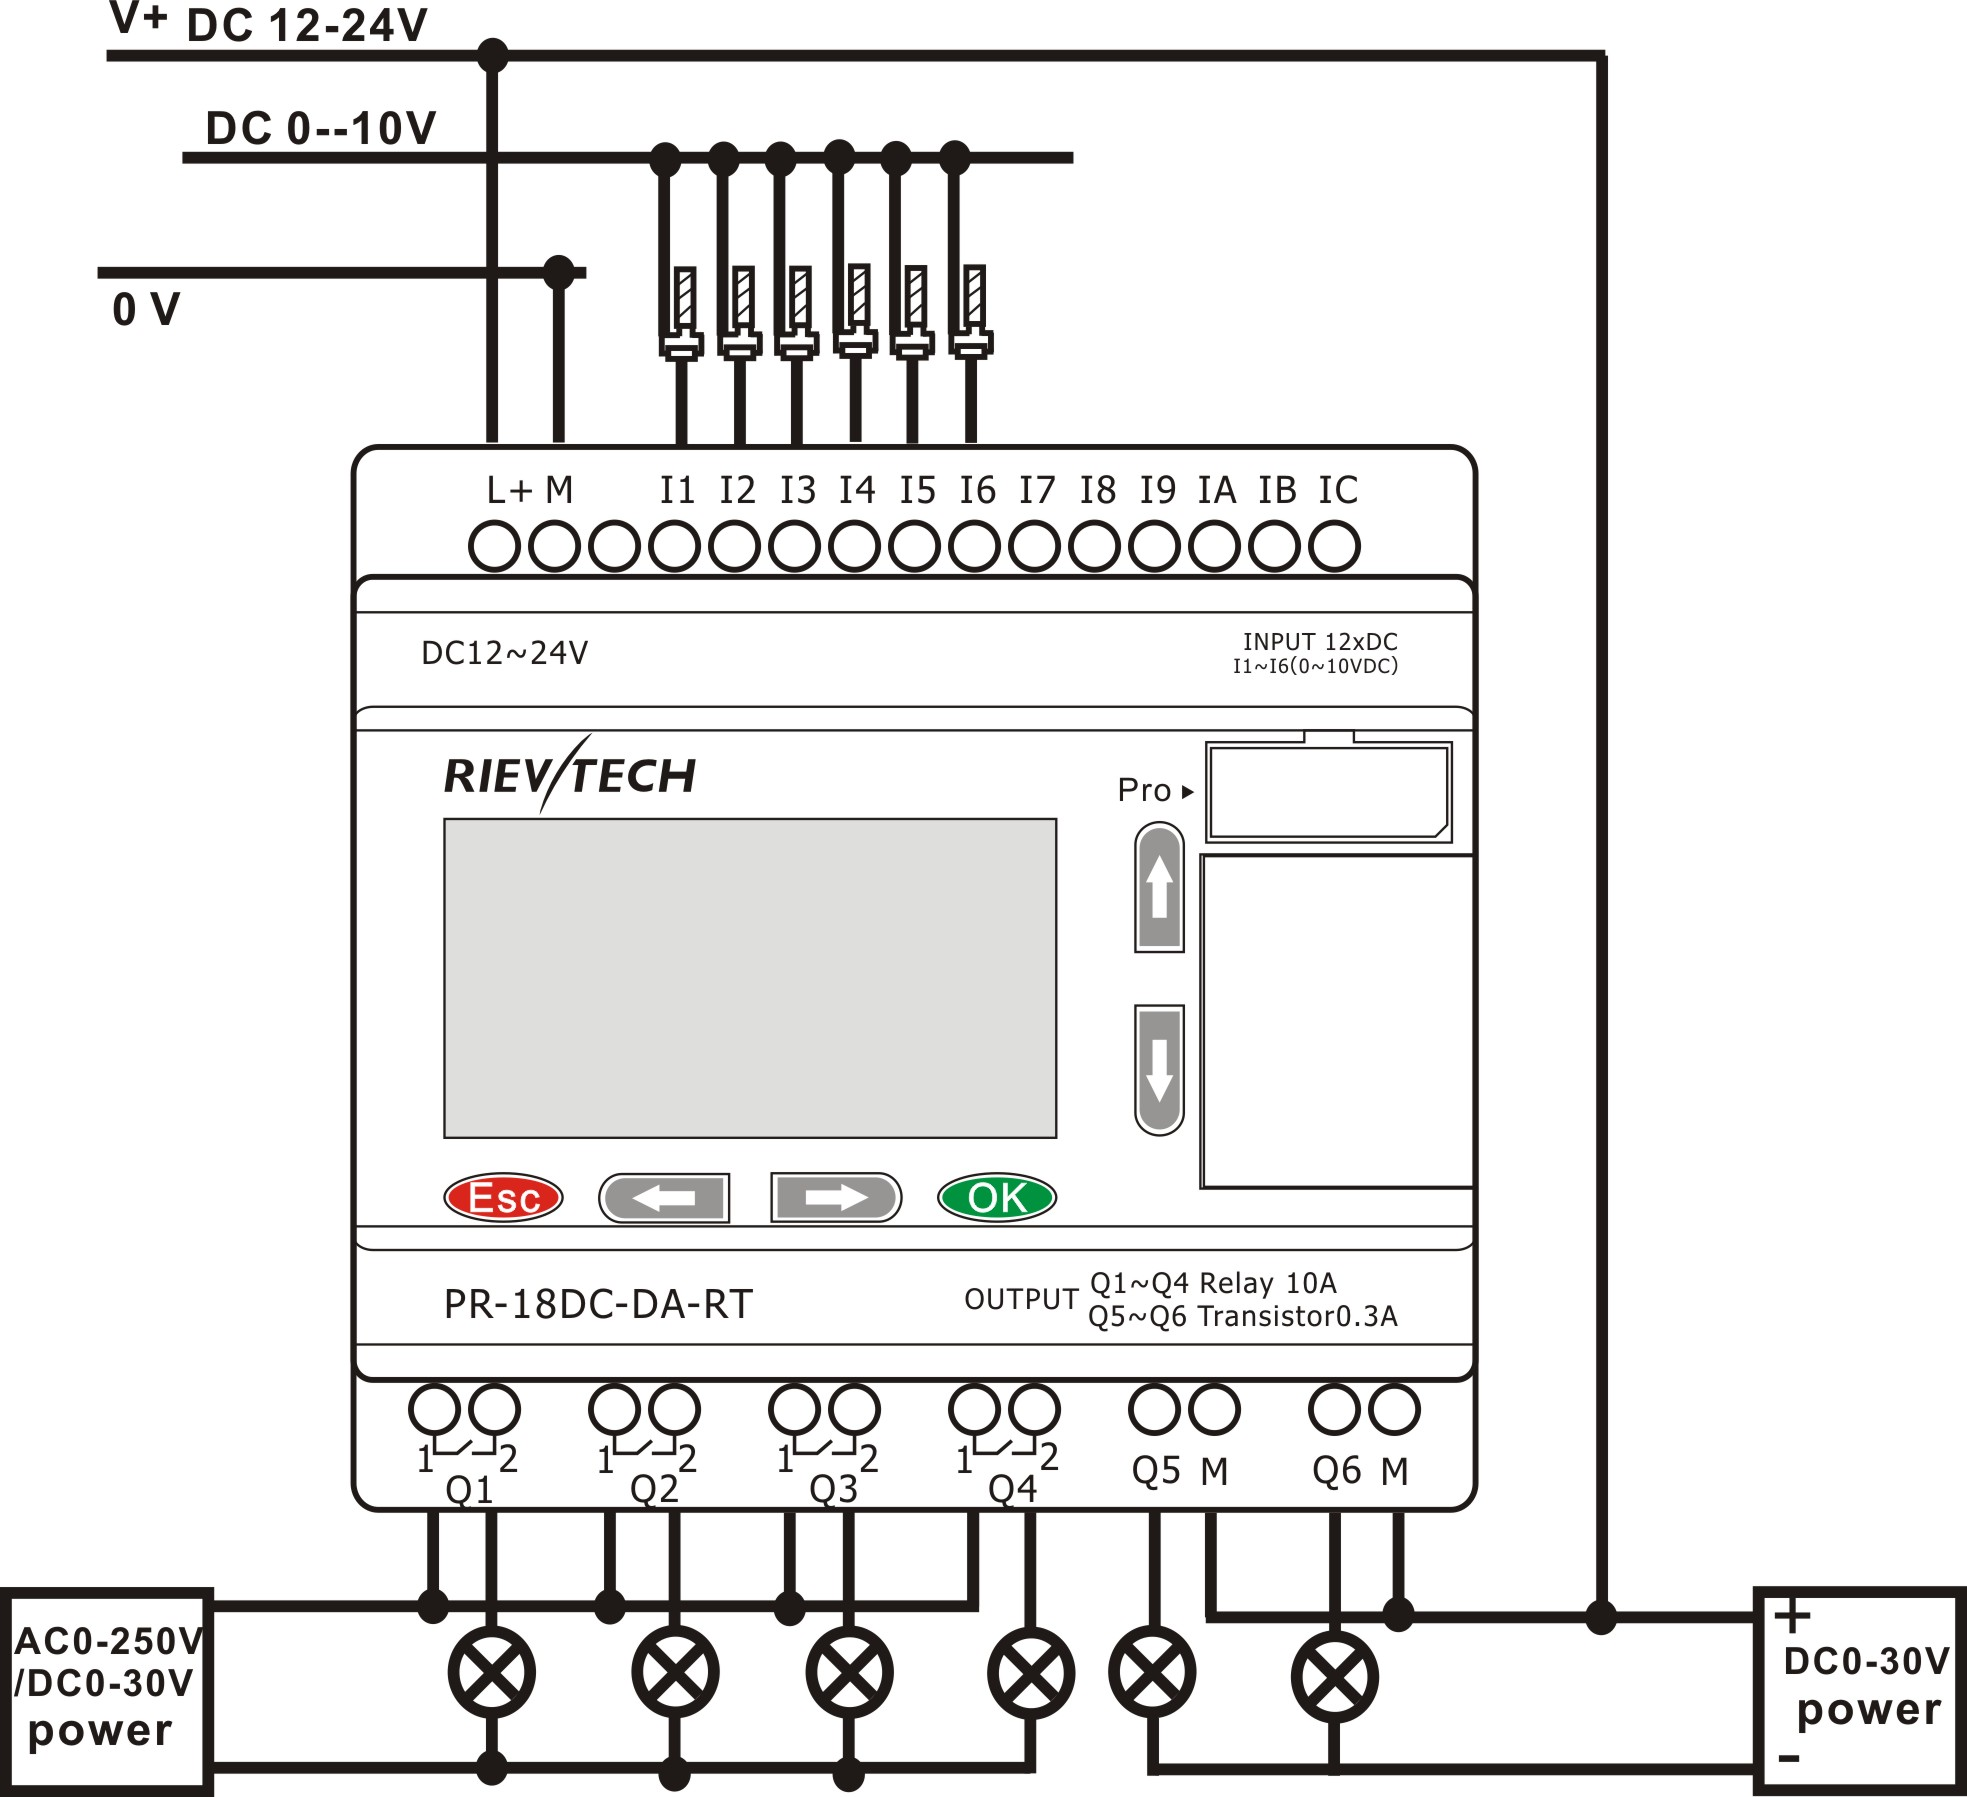 plc wiring diagram wiring diagramplc wiring diagram guide wiring diagram expertsplc wiring diagrams wiring diagram plc circuit diagram guide logo